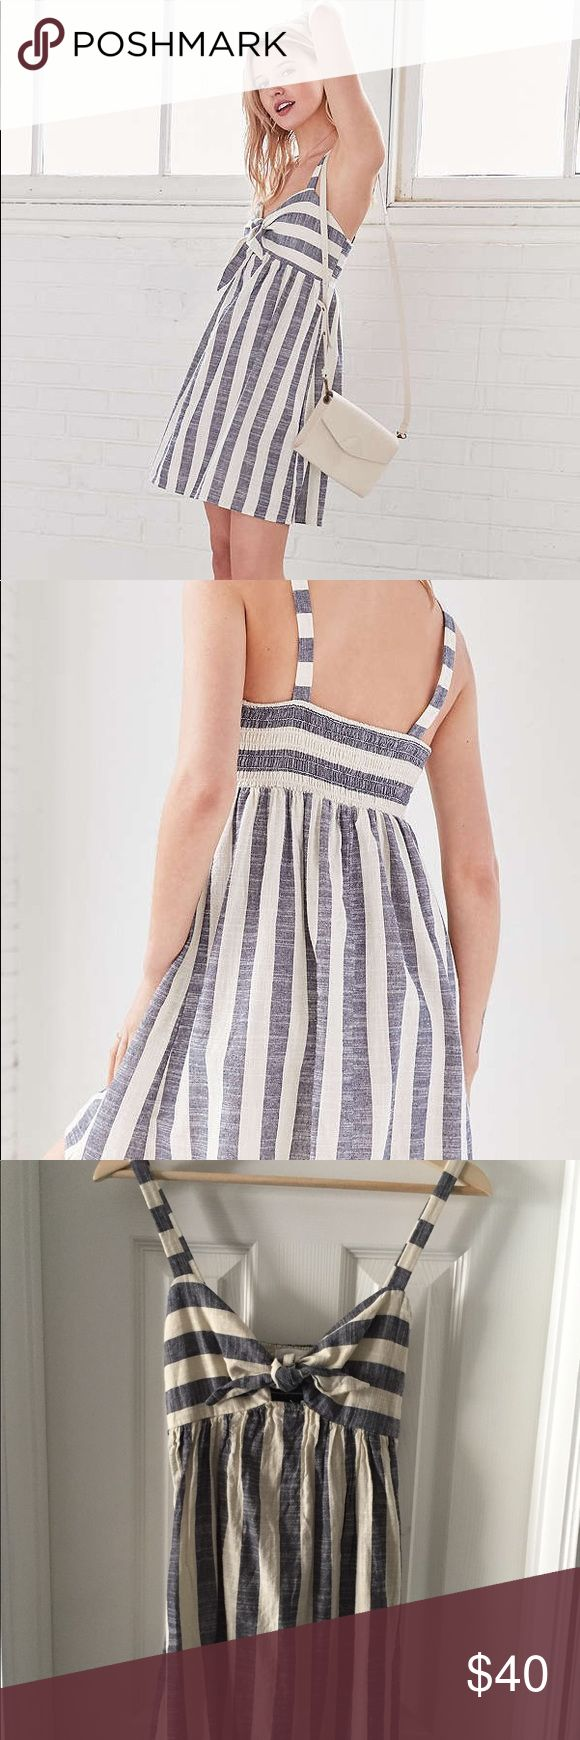 Cooperative Tie-Front Striped Mini Dress Blue and white striped summer dress from Urban Outfitters. New with tags and never worn. No trades please :) Urban Outfitters Dresses Mini